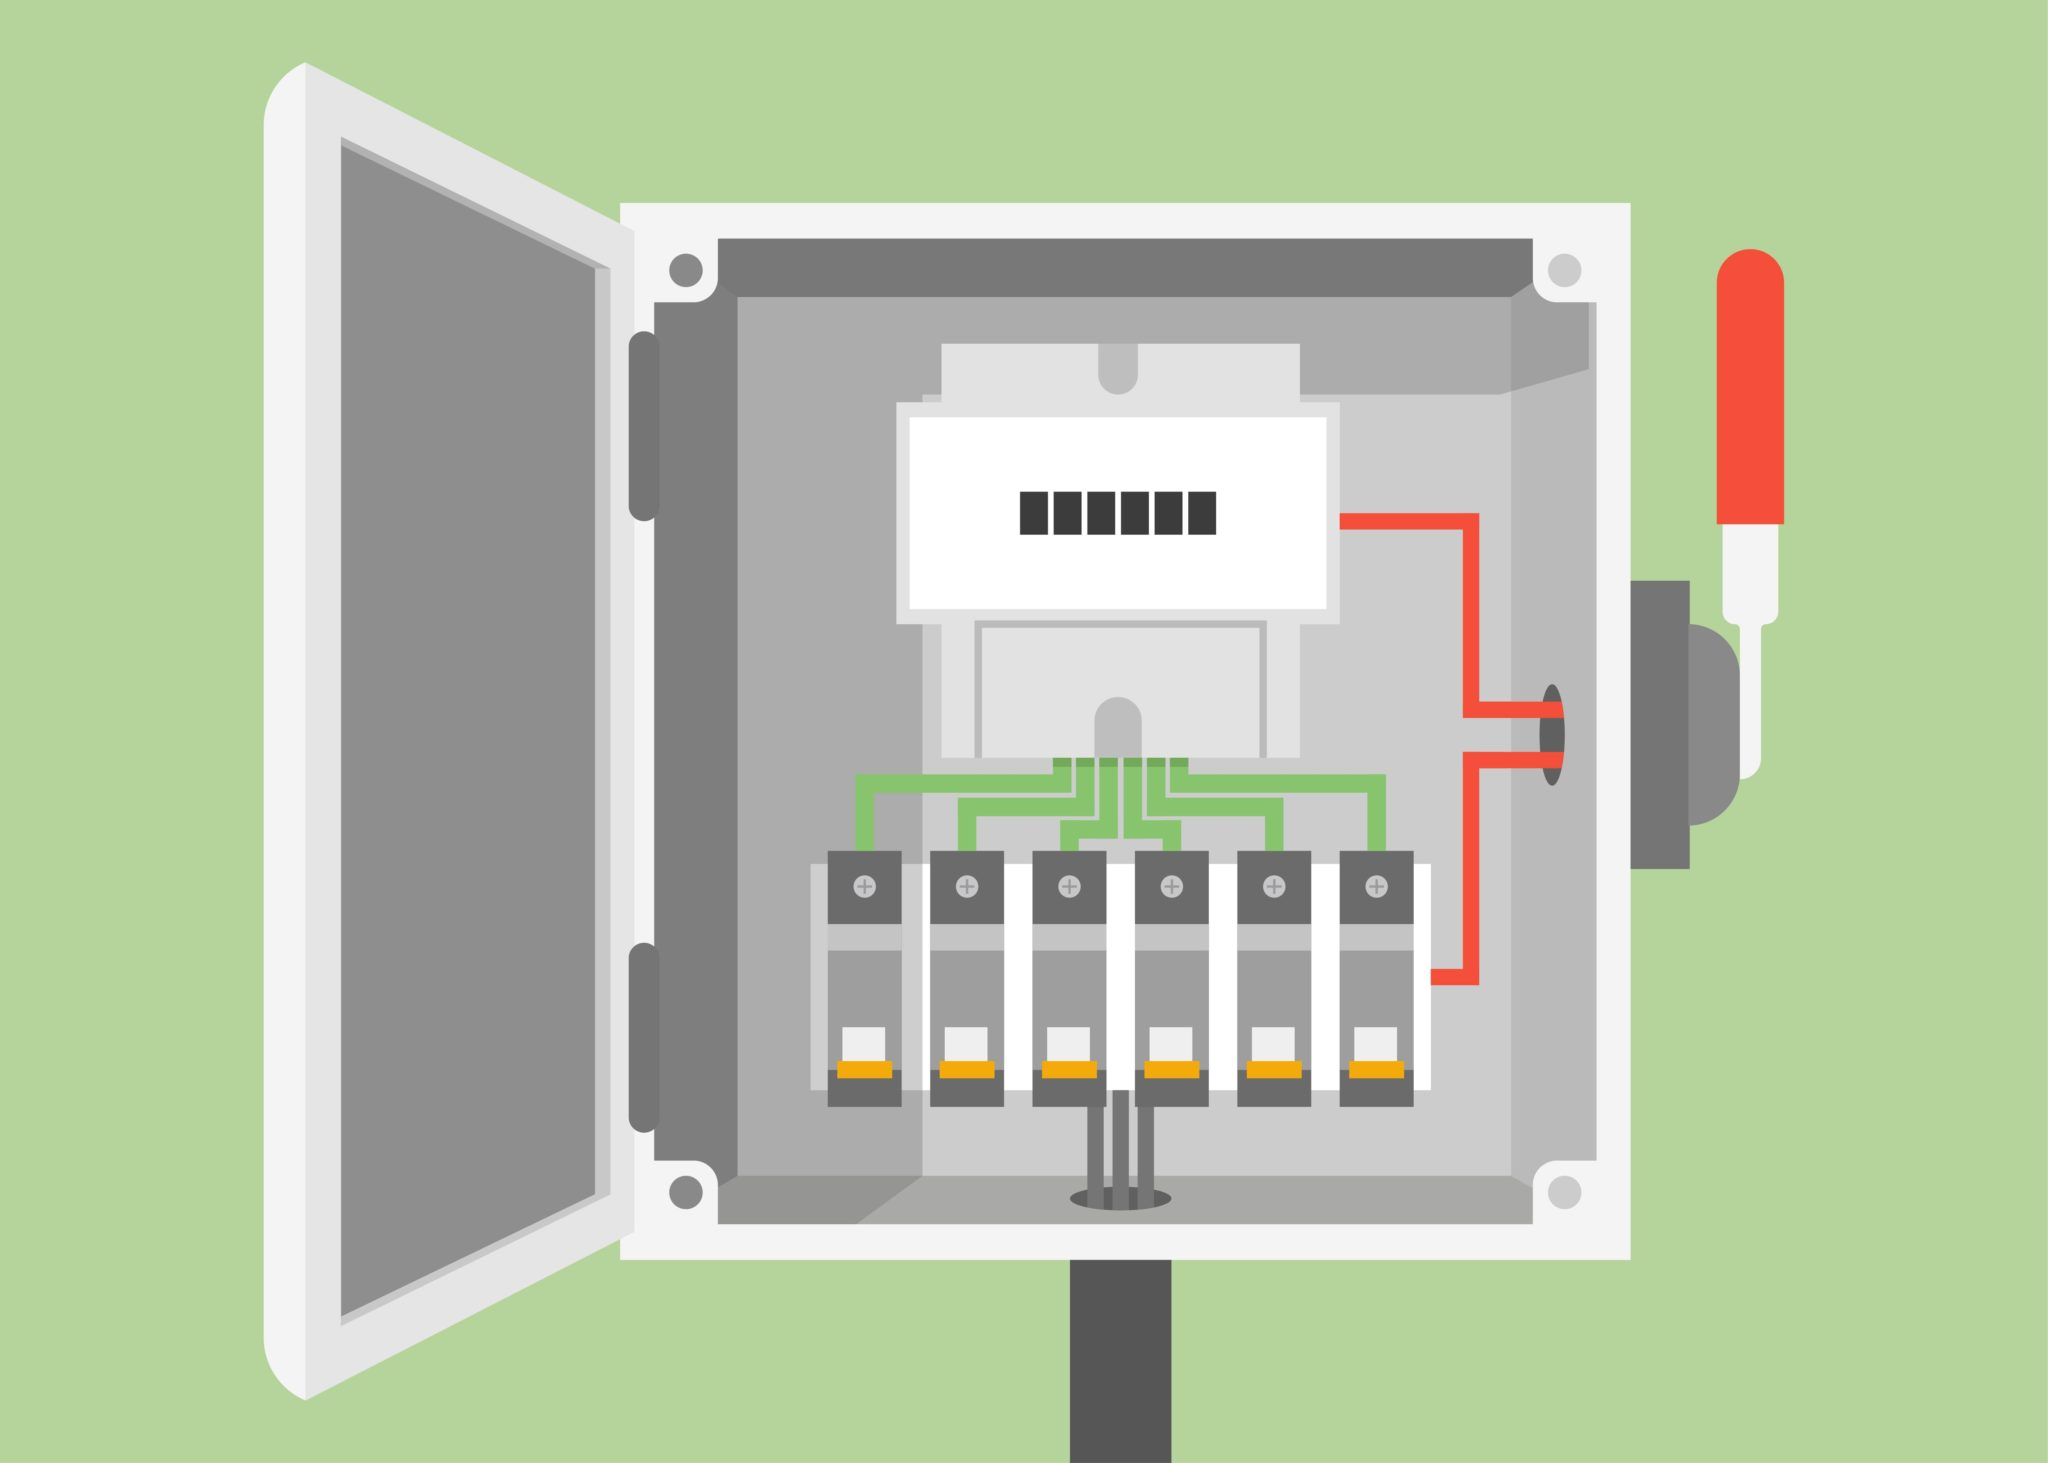 Fuse Box Safety Detailed Schematics Diagram Old Holders Electrical Panel Inspection Tips For Every Electrician Delay